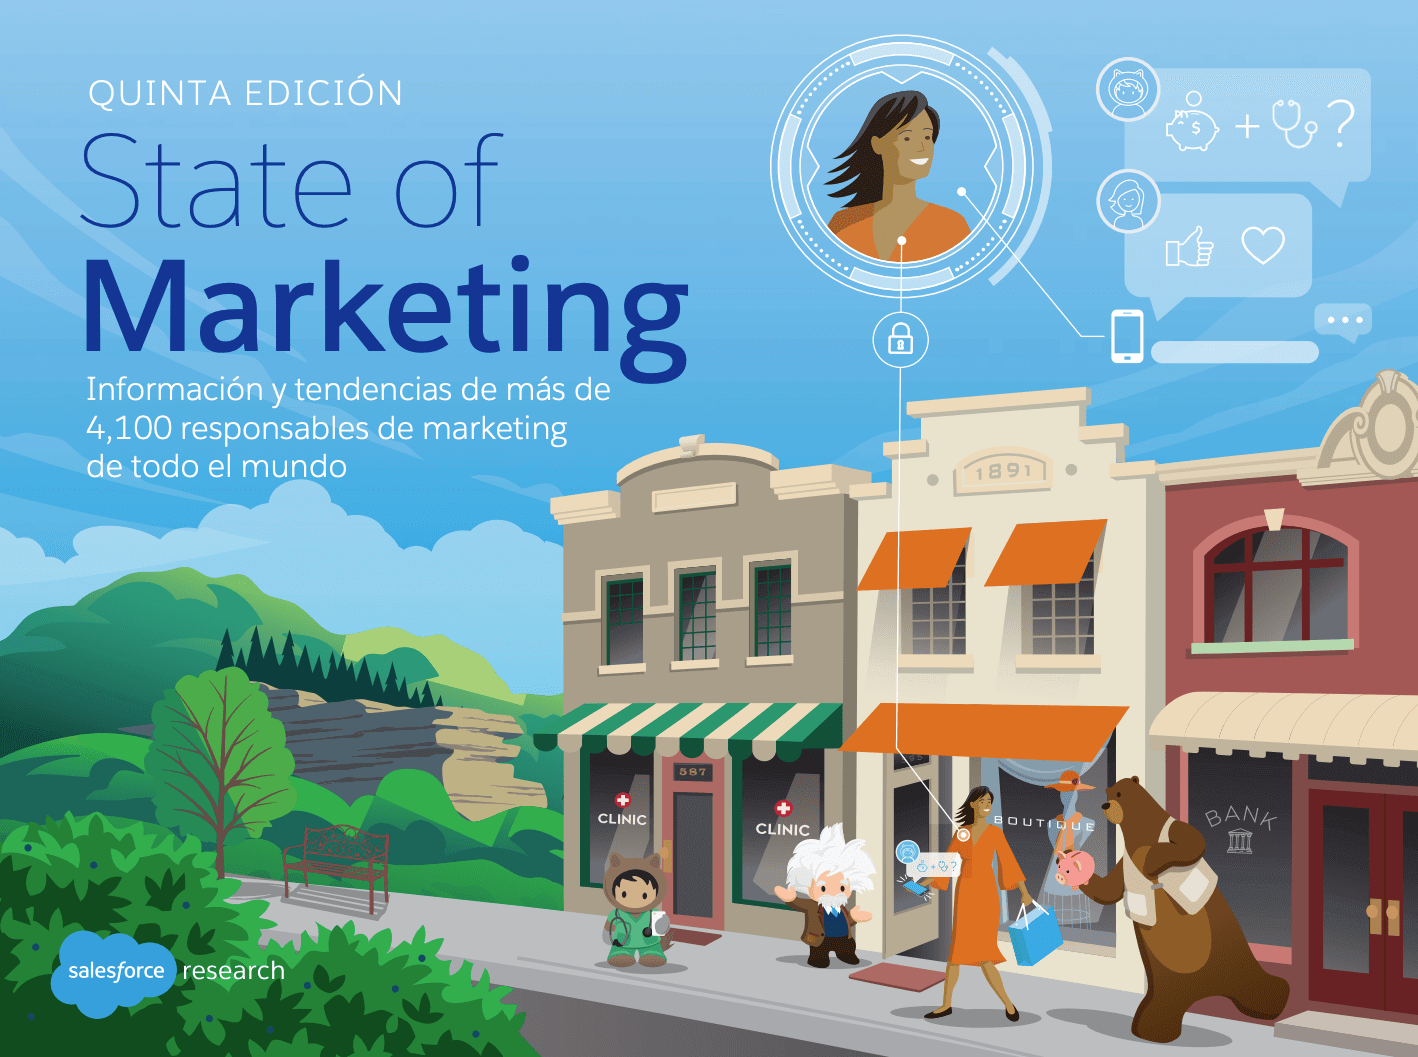 Presentación del quinto informe State of Marketing de Salesforce: las tendencias que redefinen la profesión